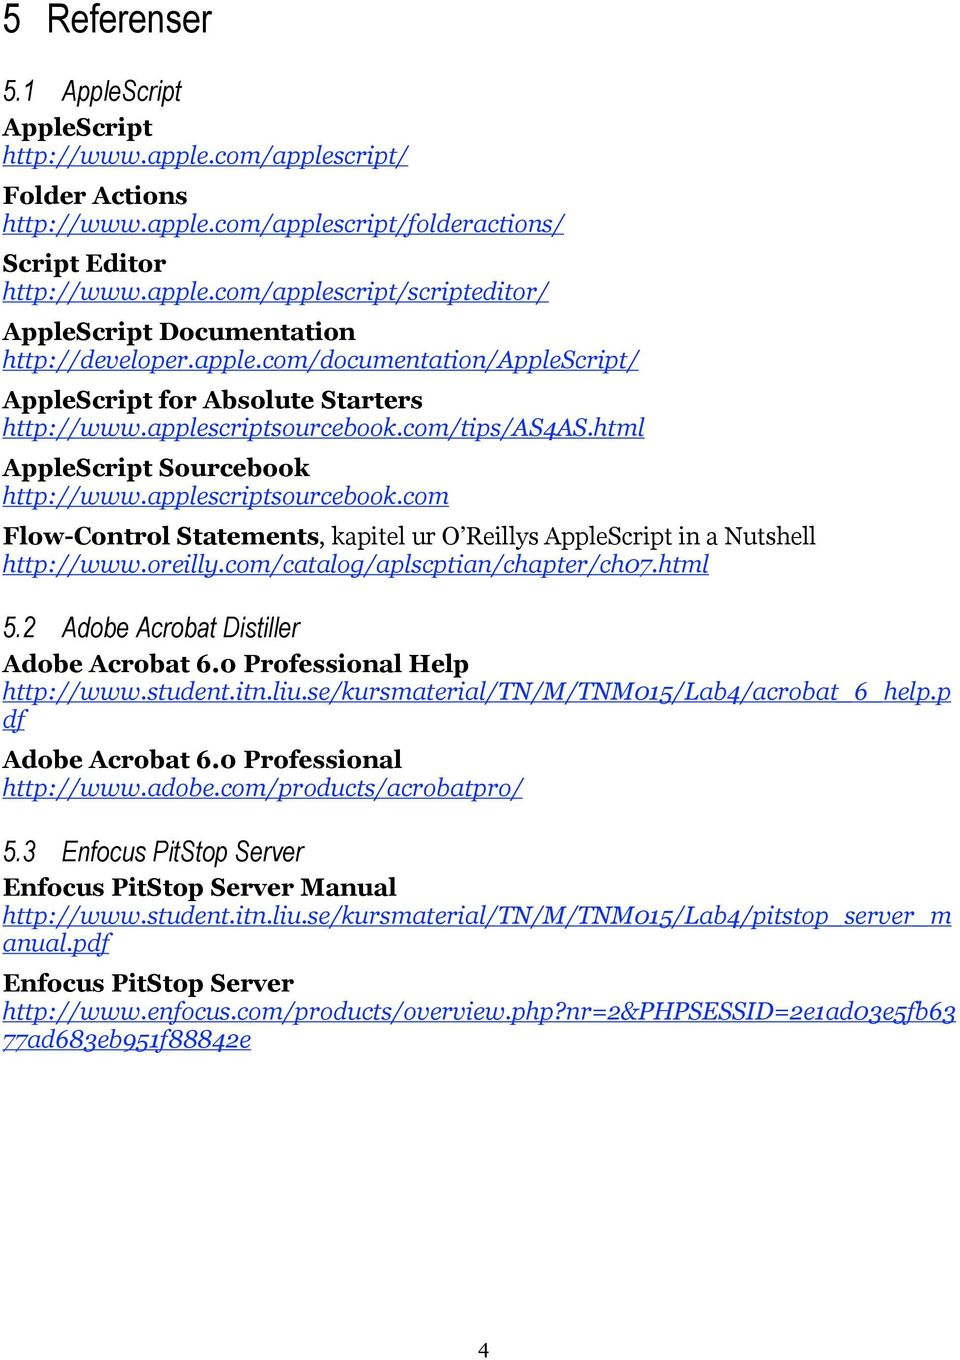 oreilly.com/catalog/aplscptian/chapter/ch07.html 5.2 Adobe Acrobat Distiller Adobe Acrobat 6.0 Professional Help http://www.student.itn.liu.se/kursmaterial/tn/m/tnm015/lab4/acrobat_6_help.